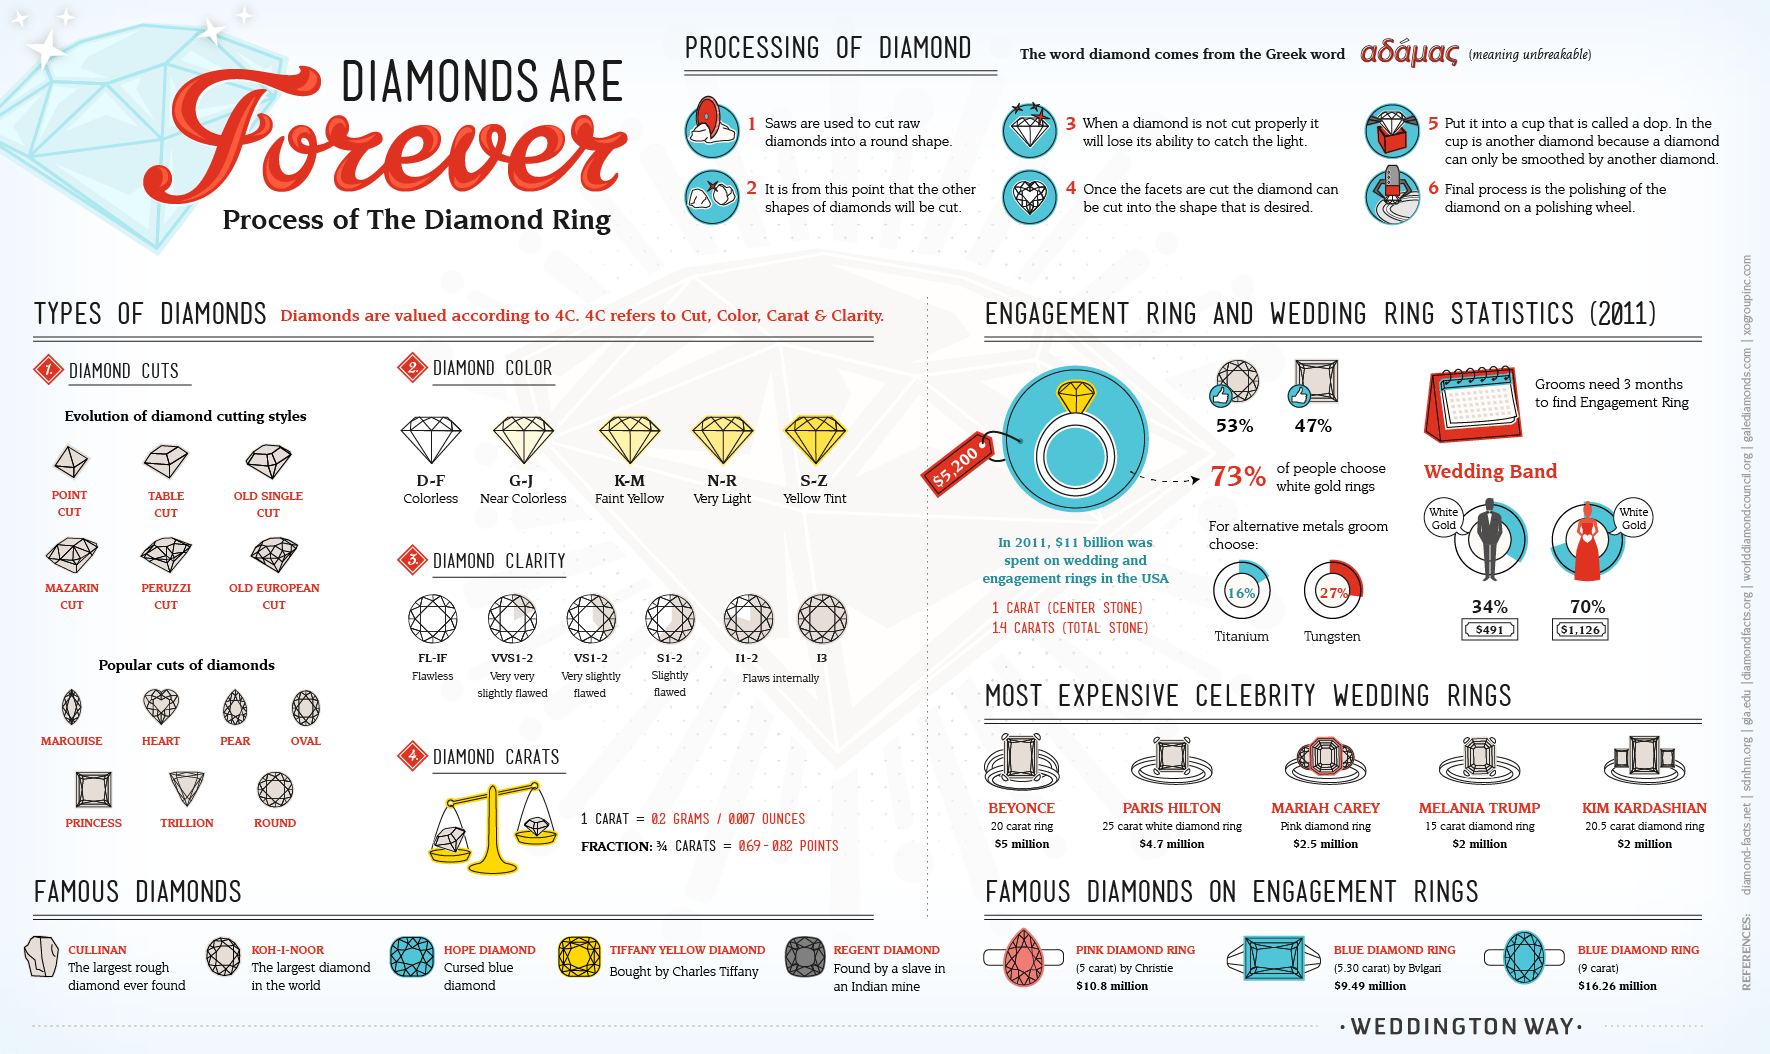 Diamonds Are Forever Process Of The Diamond Ring